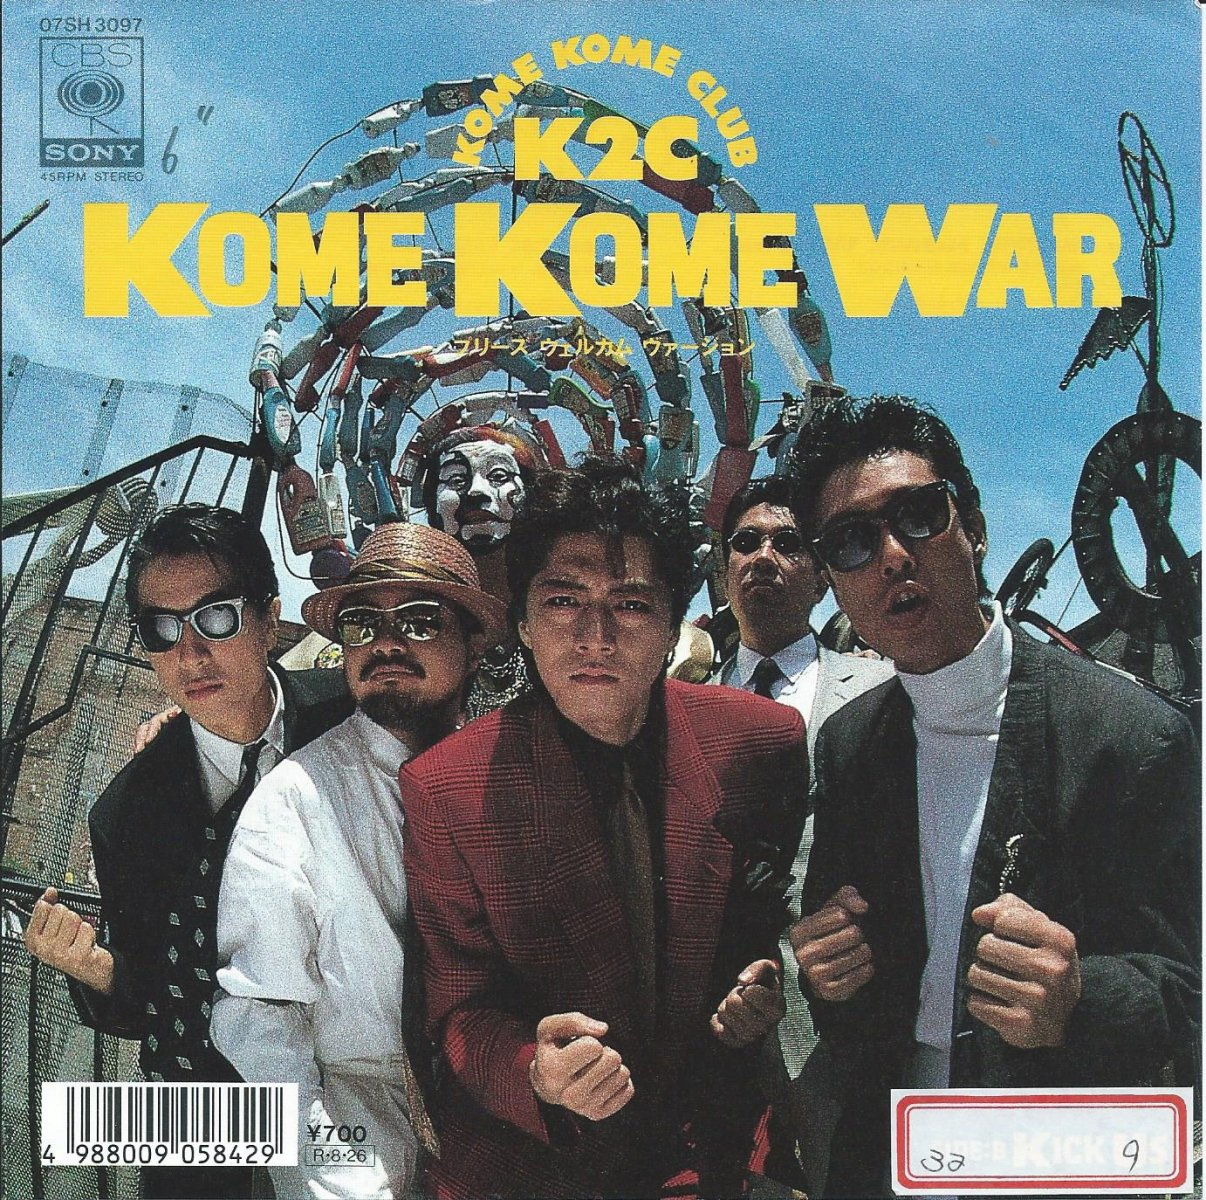 米米クラブ KOME KOME CLUB / KOME KOME WAR / KICK US (7